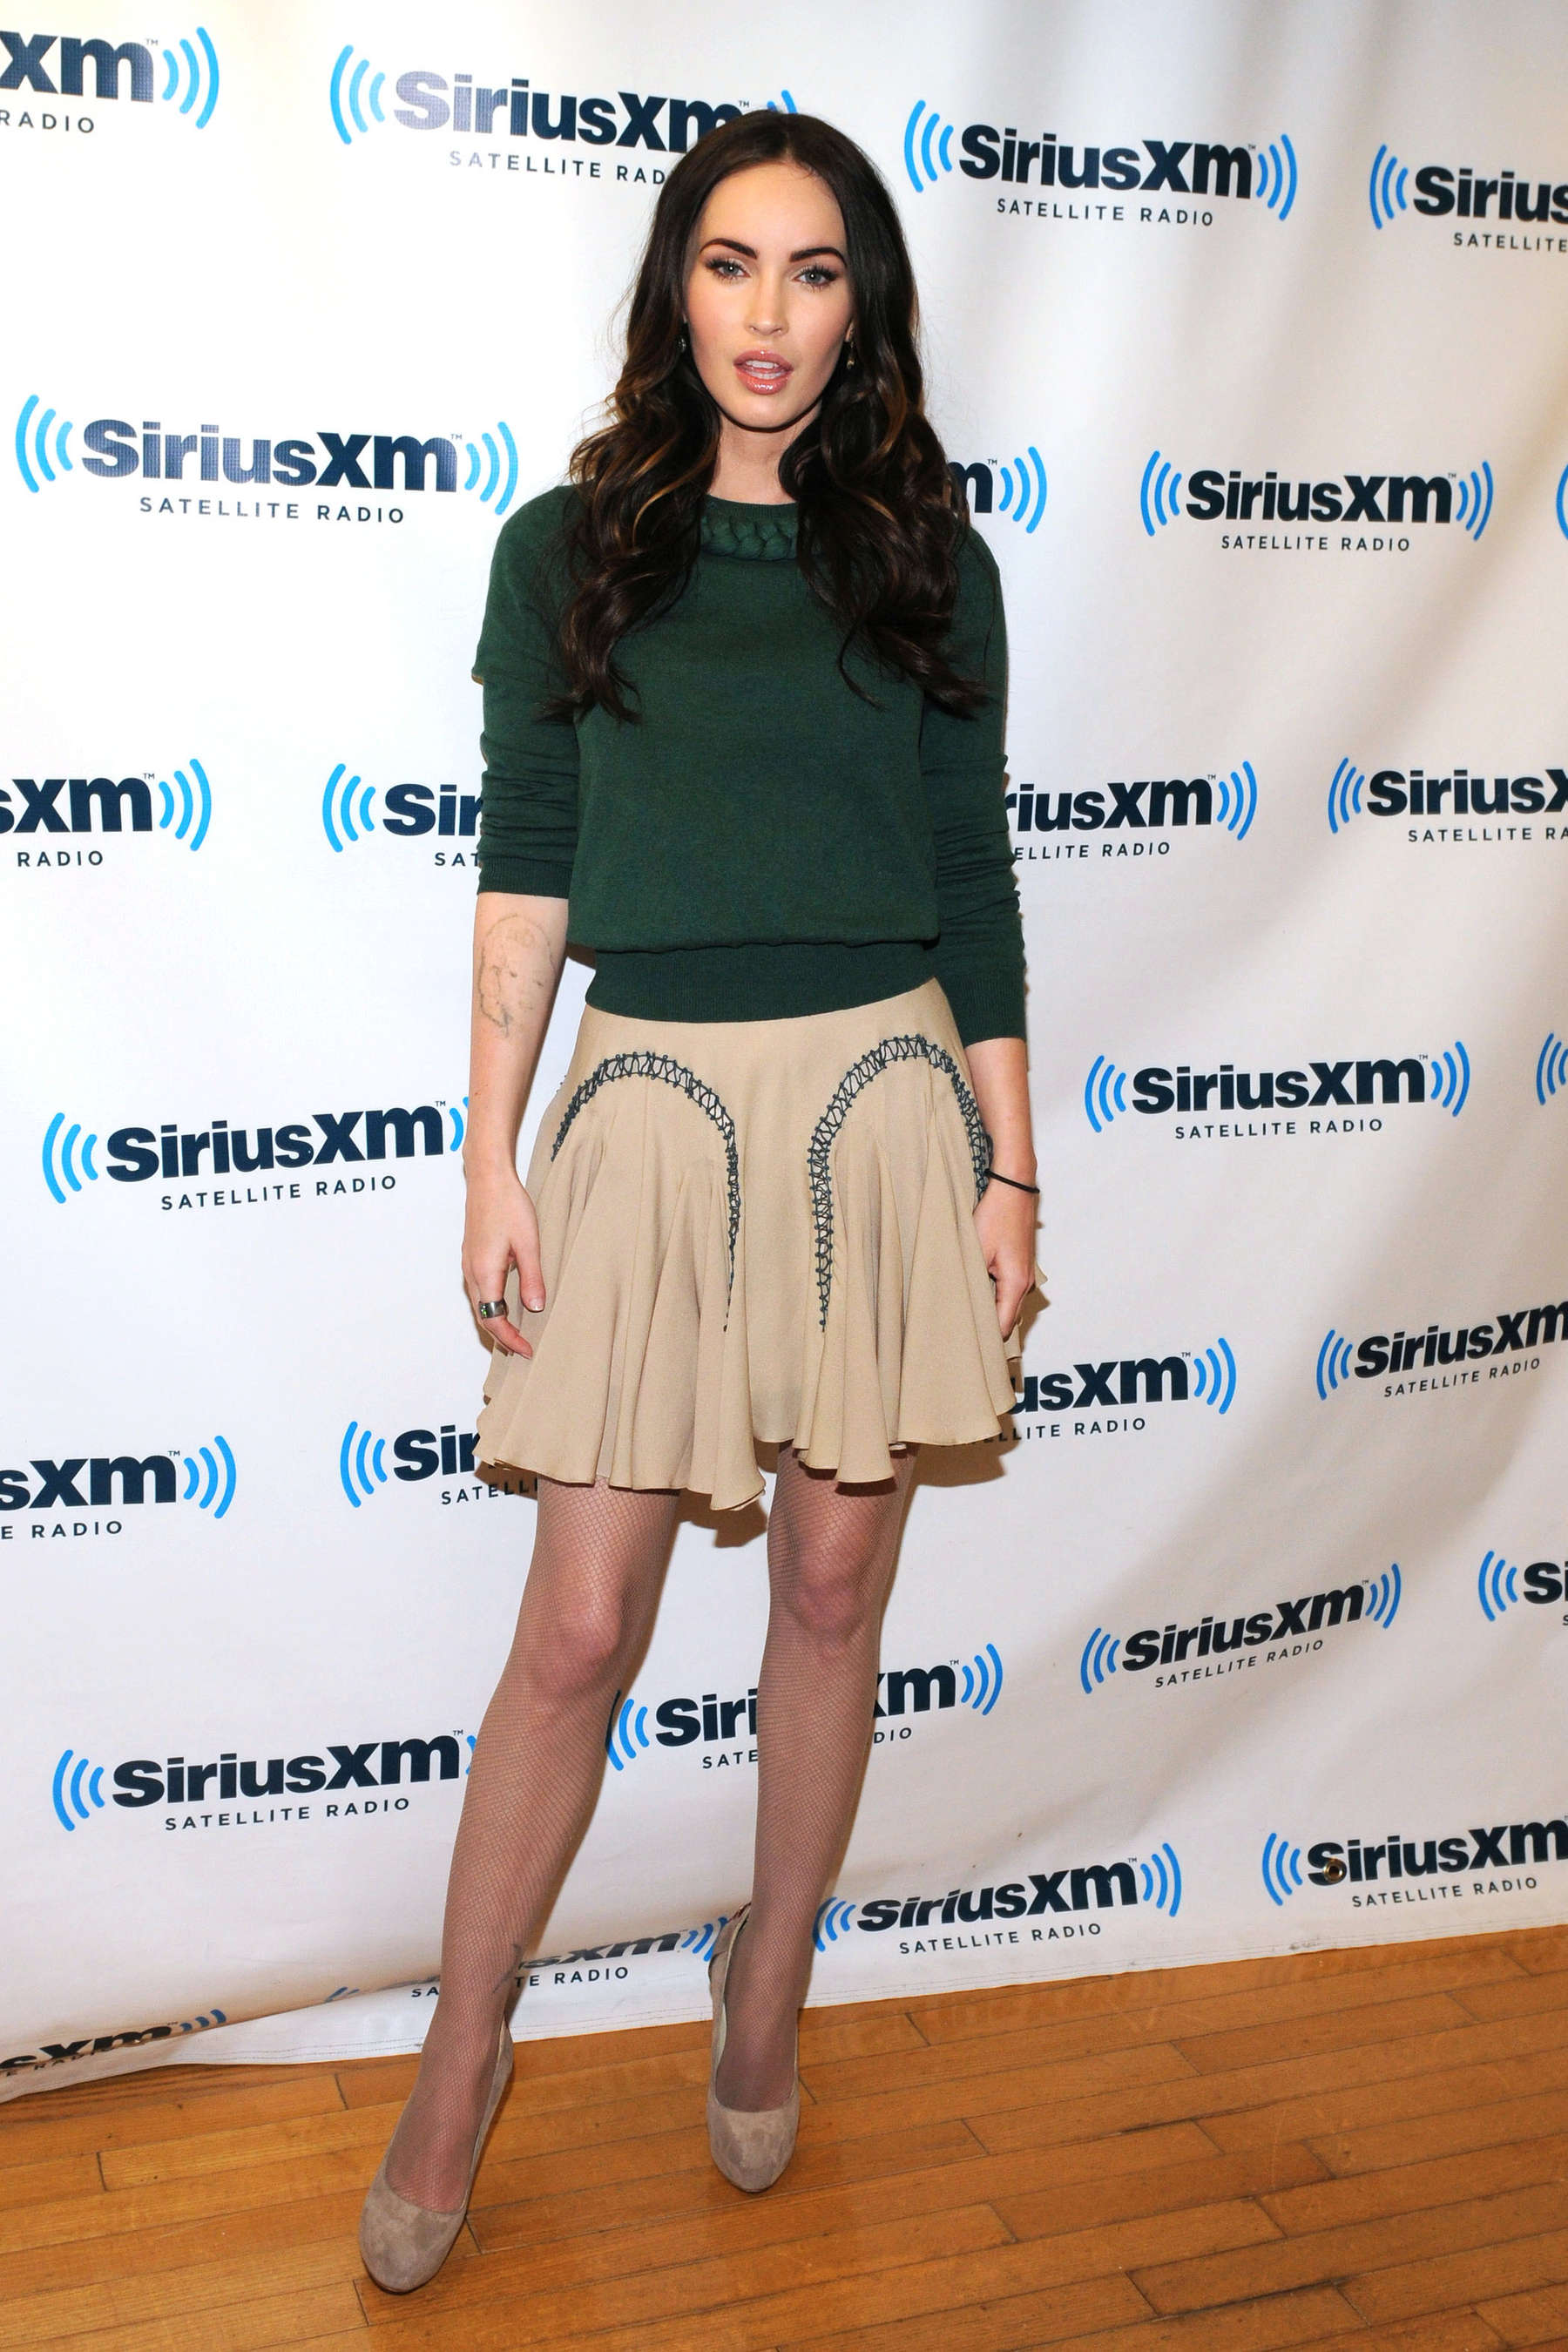 Megan Fox 2012 : Megan Fox legs at SiriusXM Radio-17